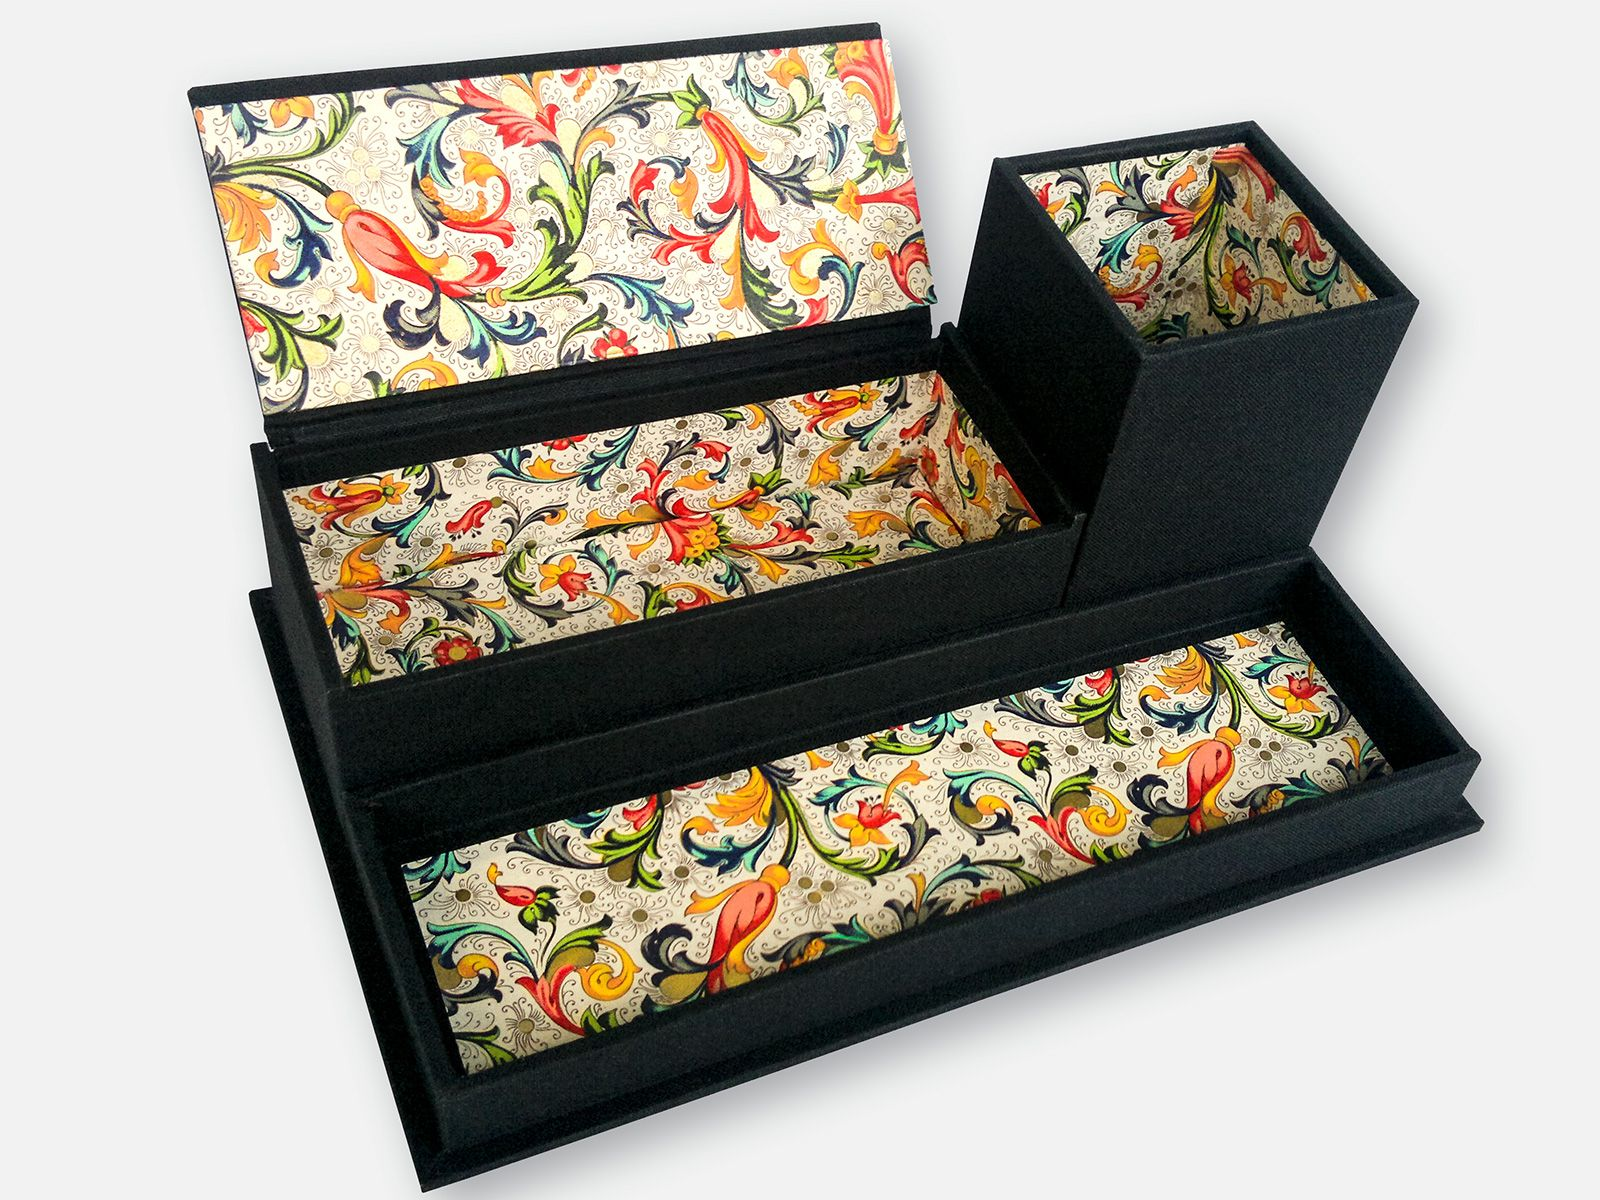 Handmade Tray Decoration Enchanting Handmade Desk Caddy  Organizer With Pencil Cup Tray And Box Inspiration Design